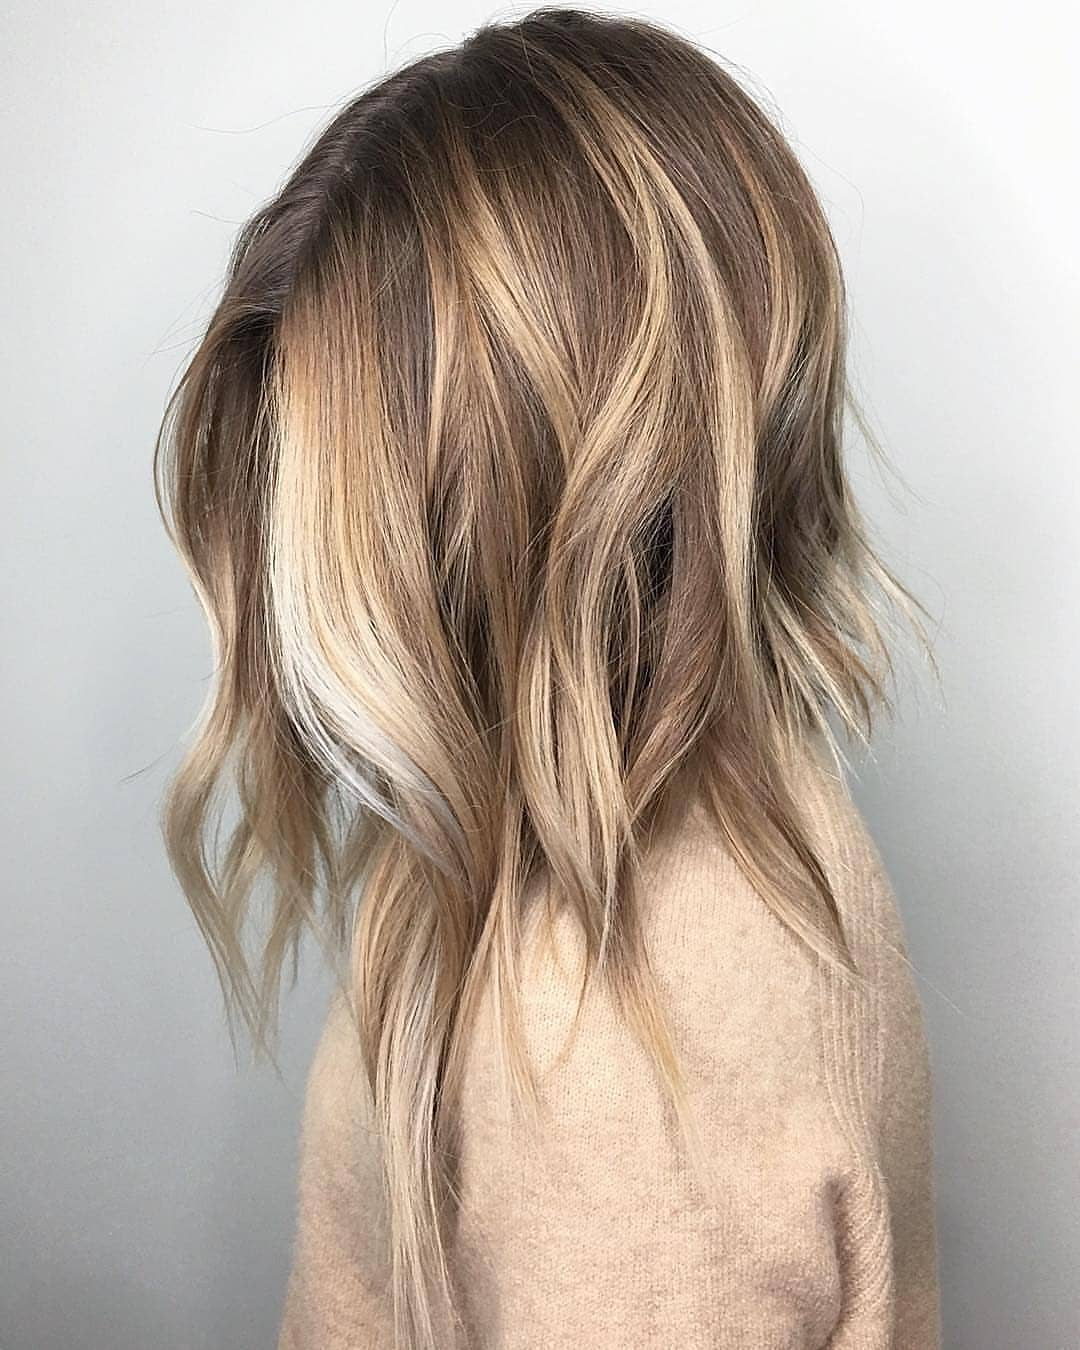 10 Medium To Long Hairstyles In Exciting Blonde Colors